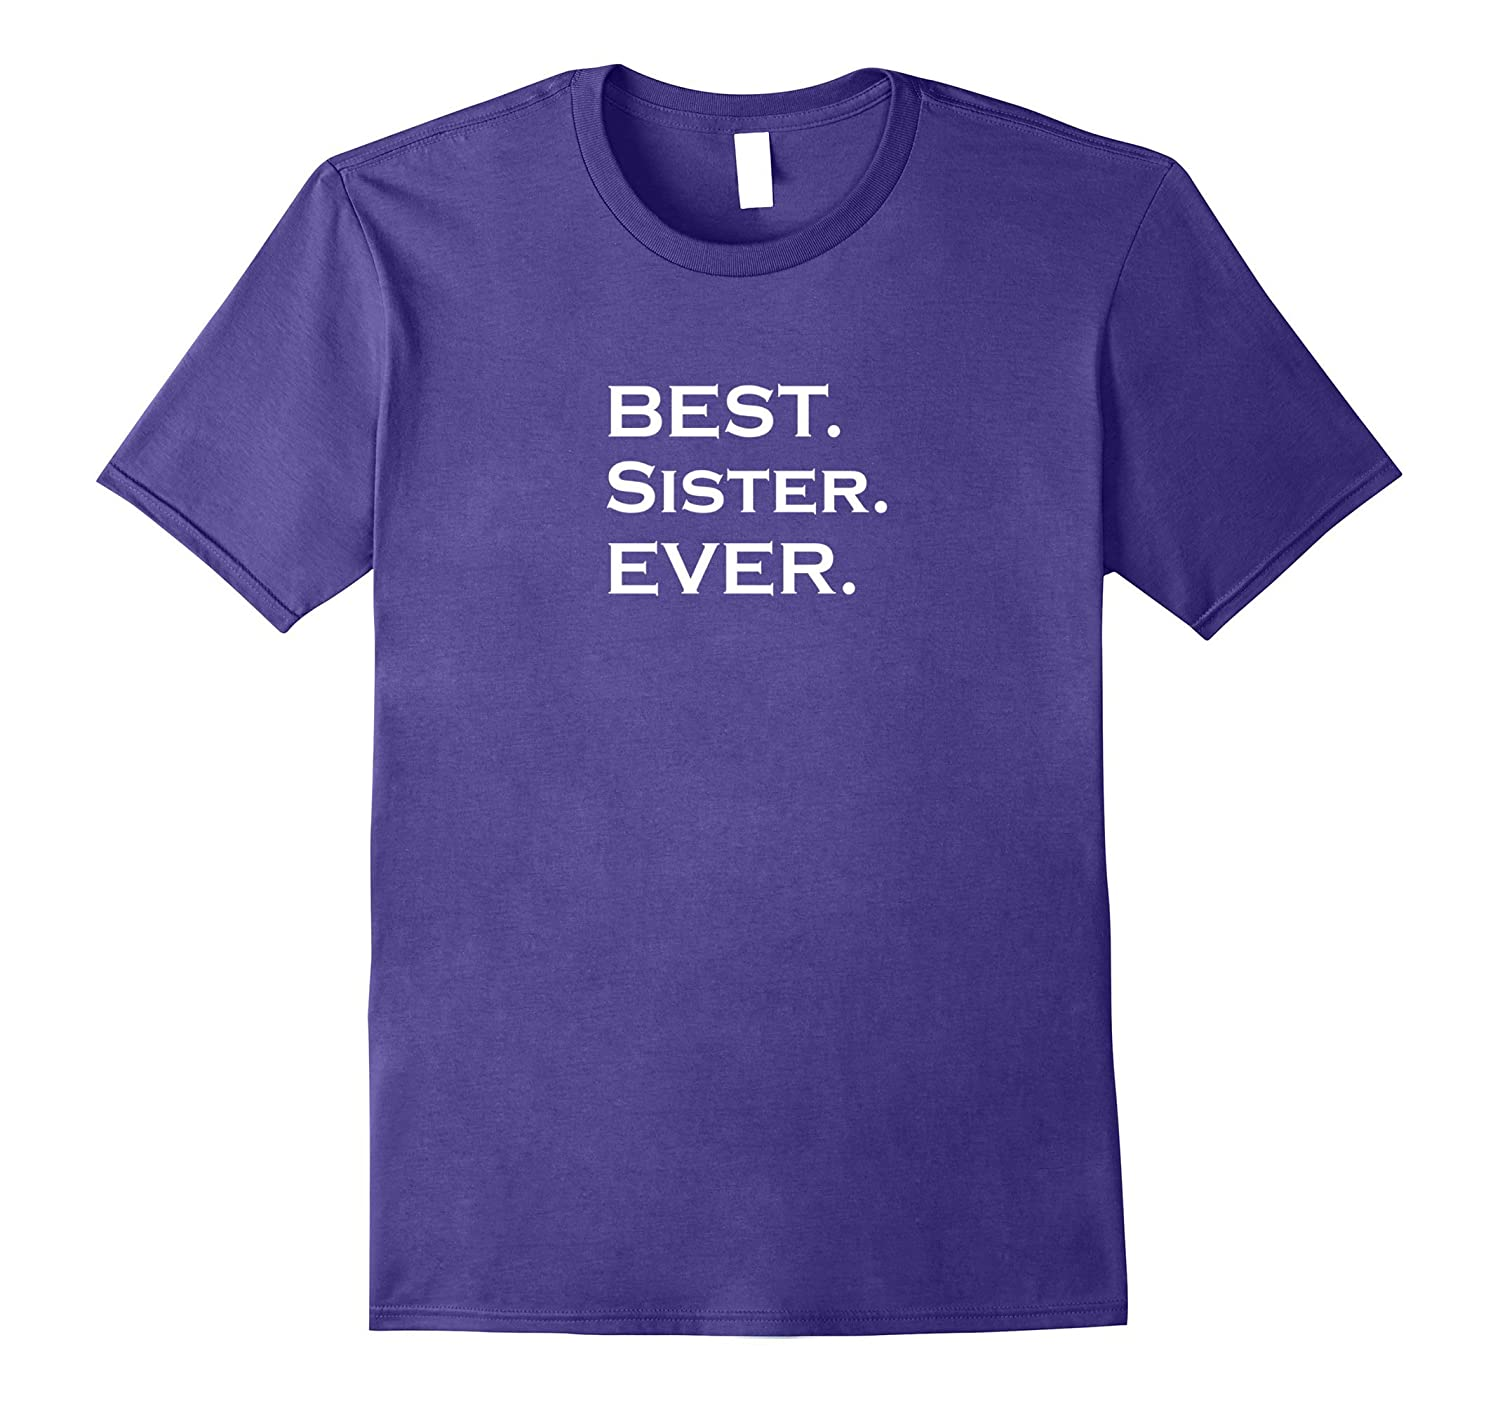 BEST. Sister. EVER. T-shirt Love My Sister-CL